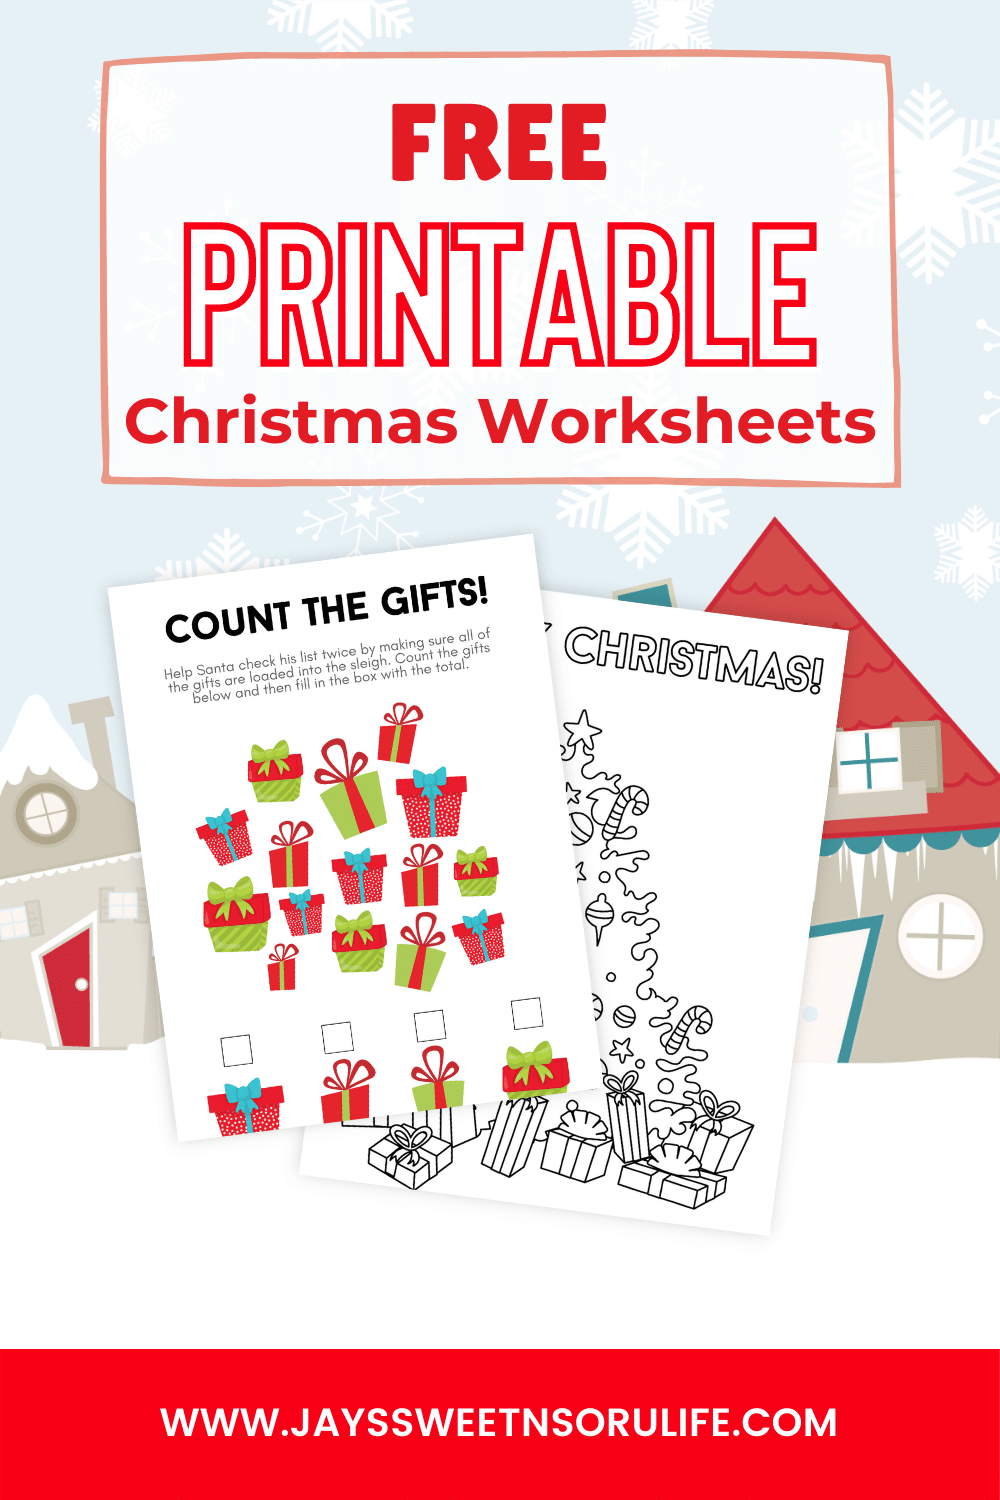 Grab these free printable Christmas worksheets, perfect for classrooms and Christmas parties. These fun Christmas printable worksheets include coloring pages, counting gifts, a Wordsearch, and a crossword puzzle.